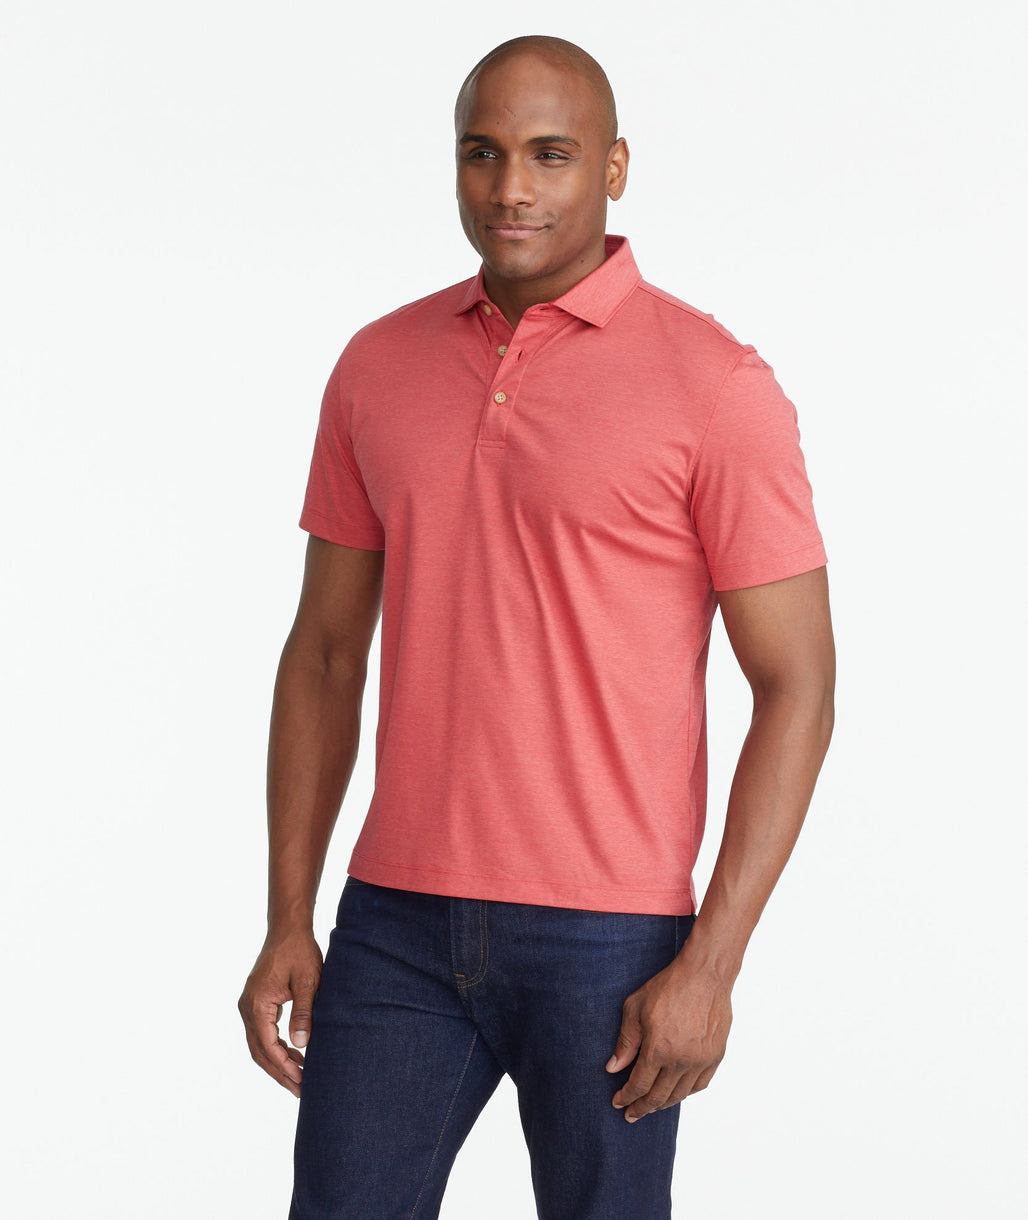 A model wearing a Red Luxe Wrinkle-Free Pique Polo